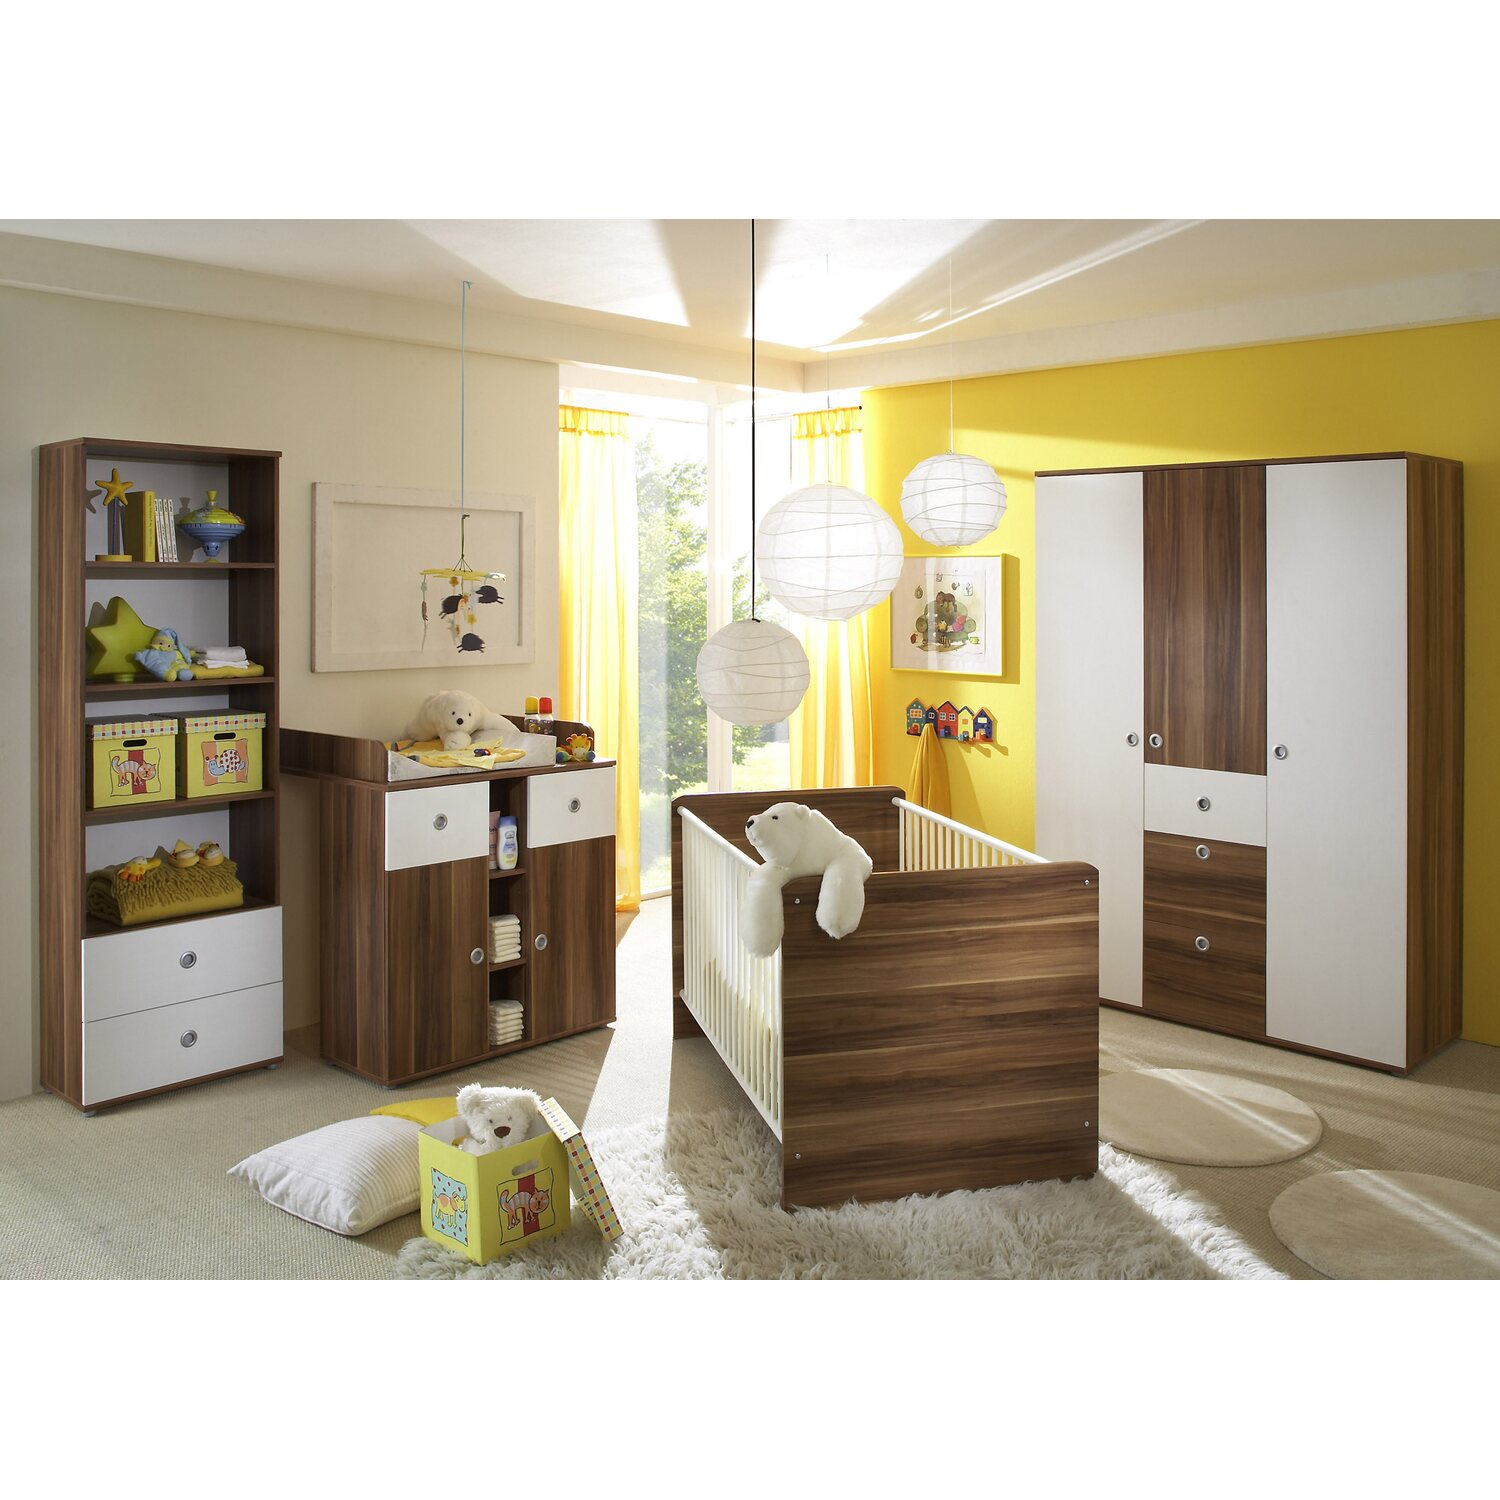 babyzimmer set milu 4 teilig wallnuss nachbildung wei kaufen bei obi. Black Bedroom Furniture Sets. Home Design Ideas